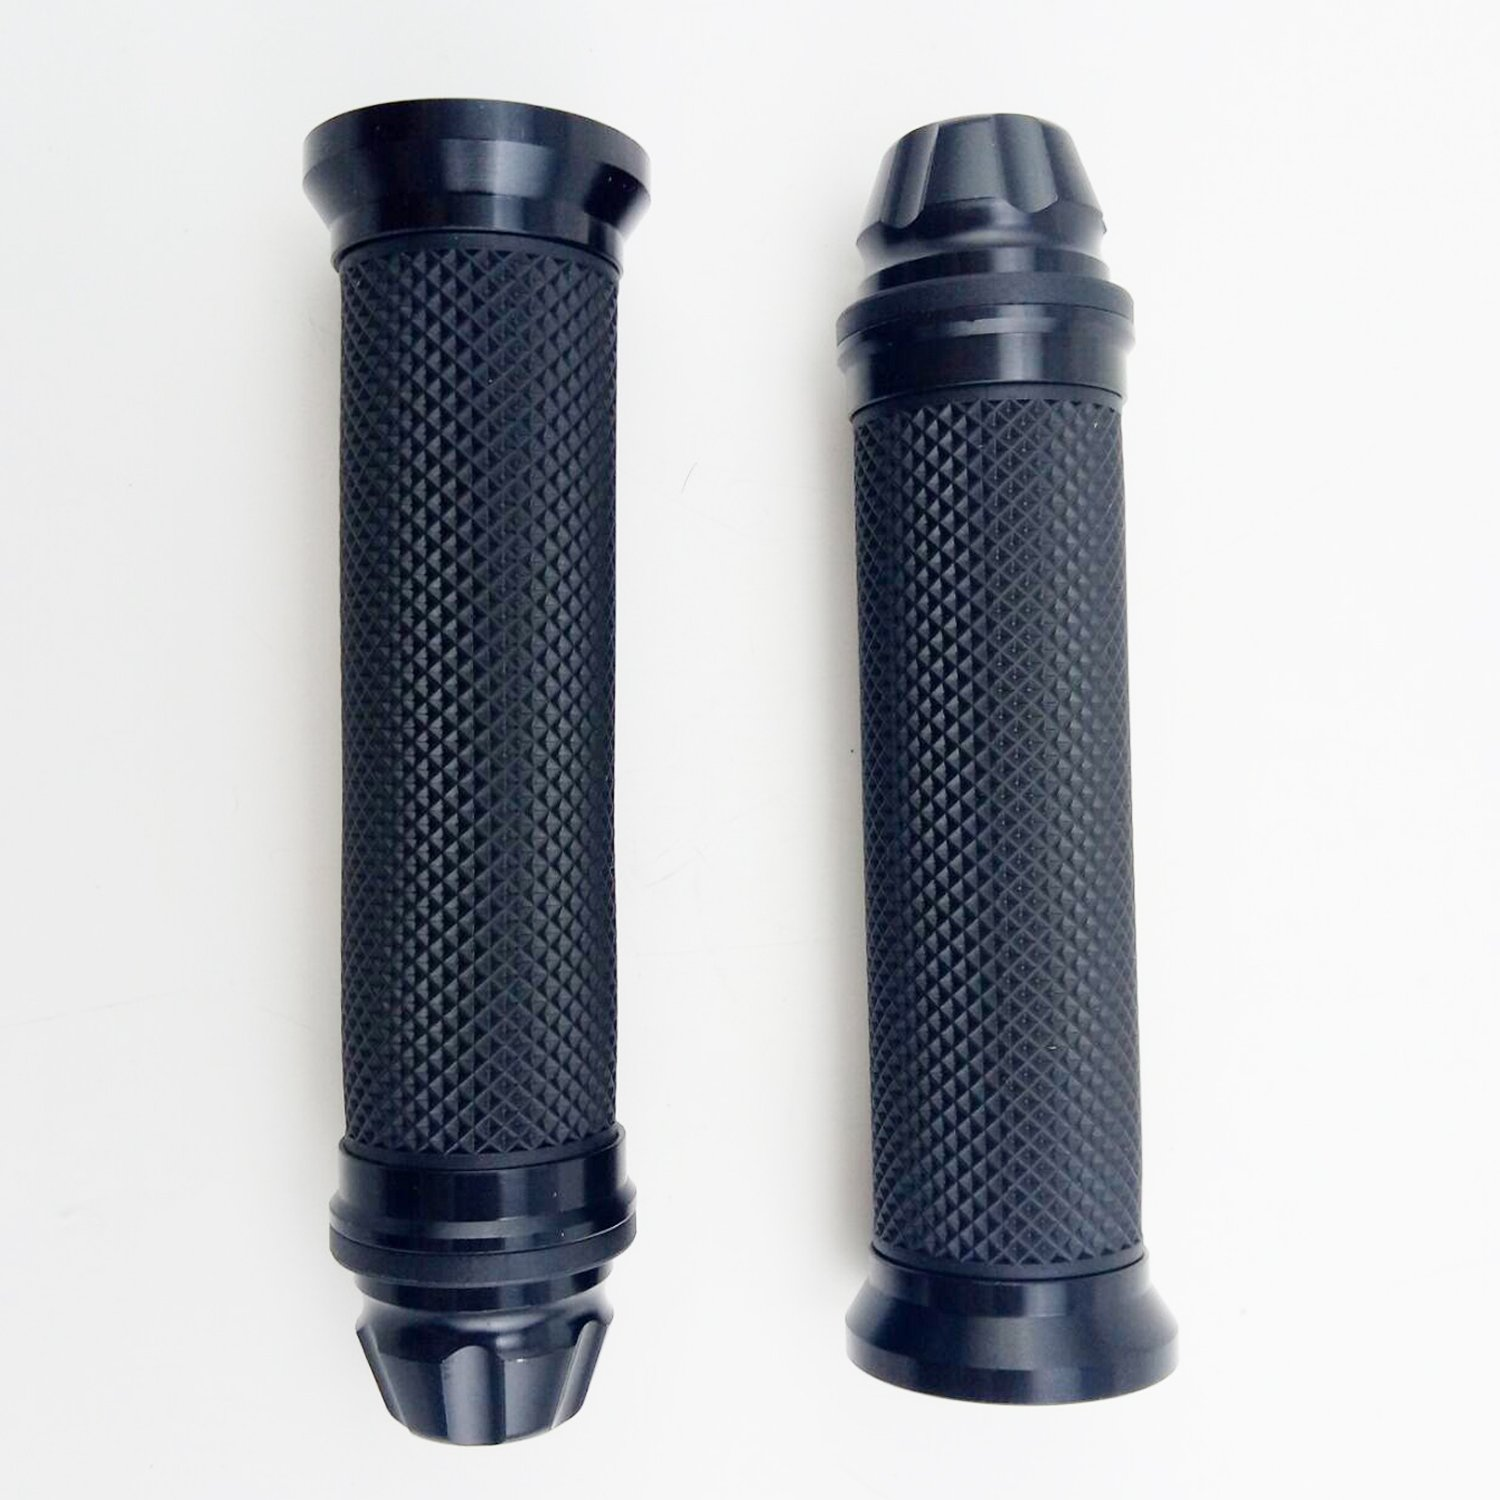 OKSTNO Motorcycle 7//8 CNC Hand Grips Aluminum Rubber Gel Handlebar for Sport Bike Black